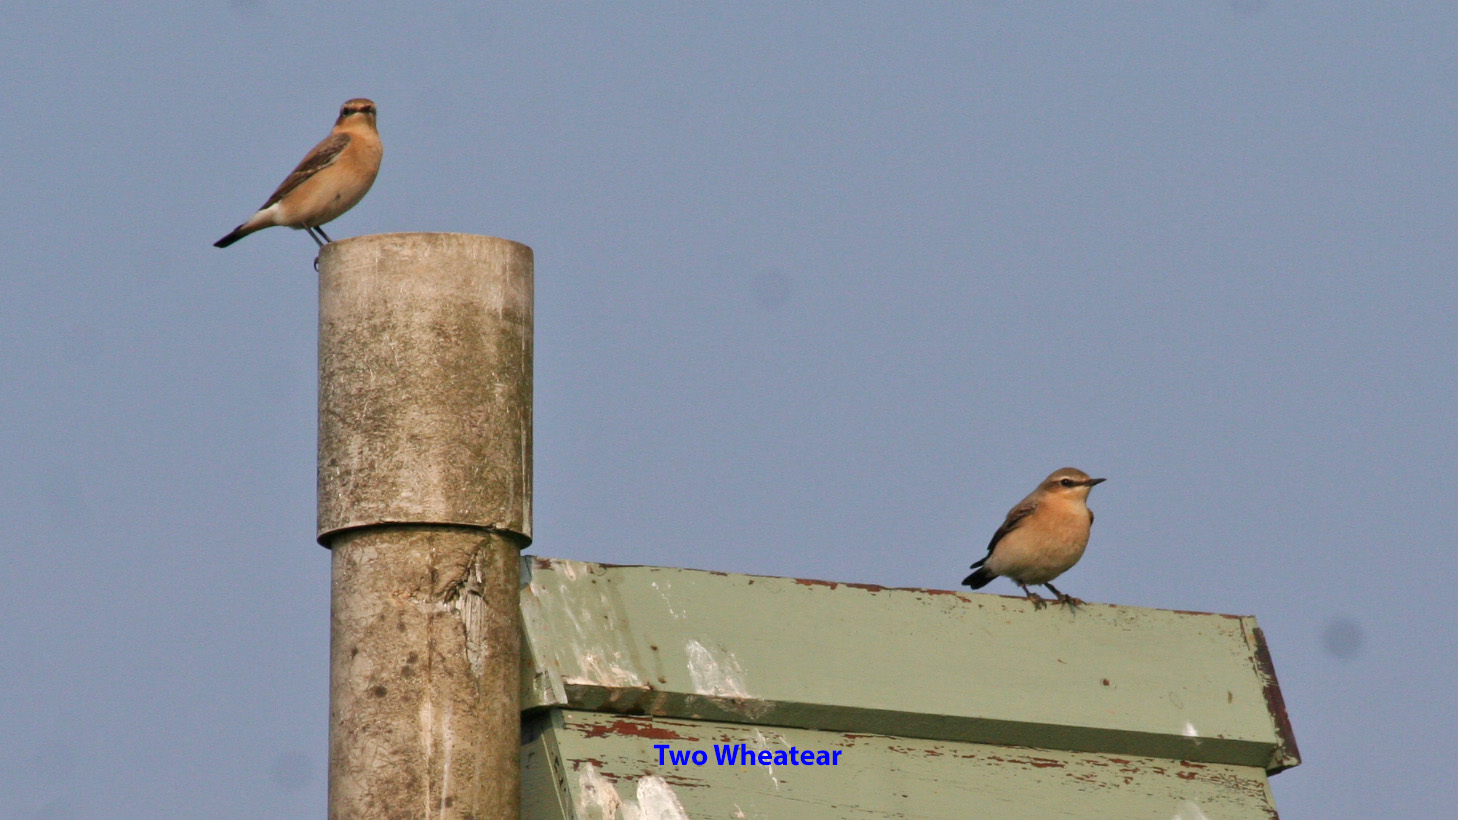 two-wheatear-on-owl-box-named-e5f8661925067db4b084d976038274ba5c37d471